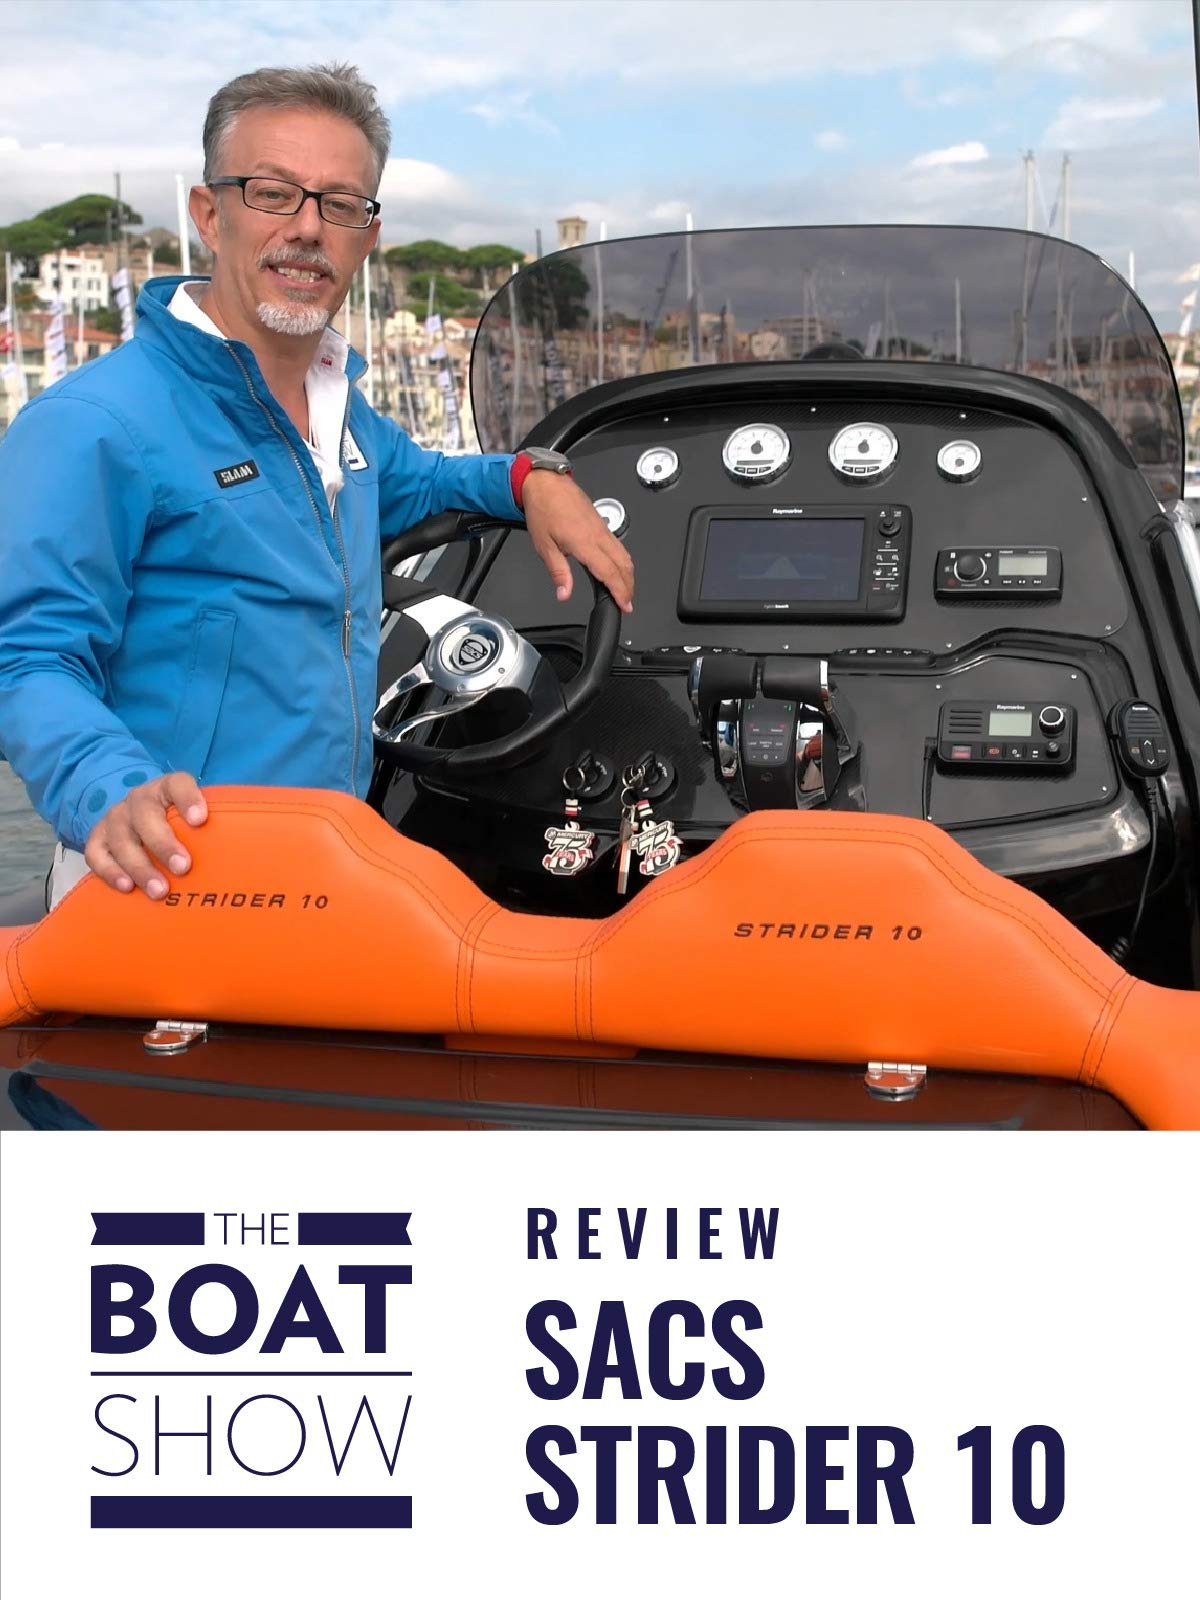 Clip: Sacs Strider 10 - The Boat Show